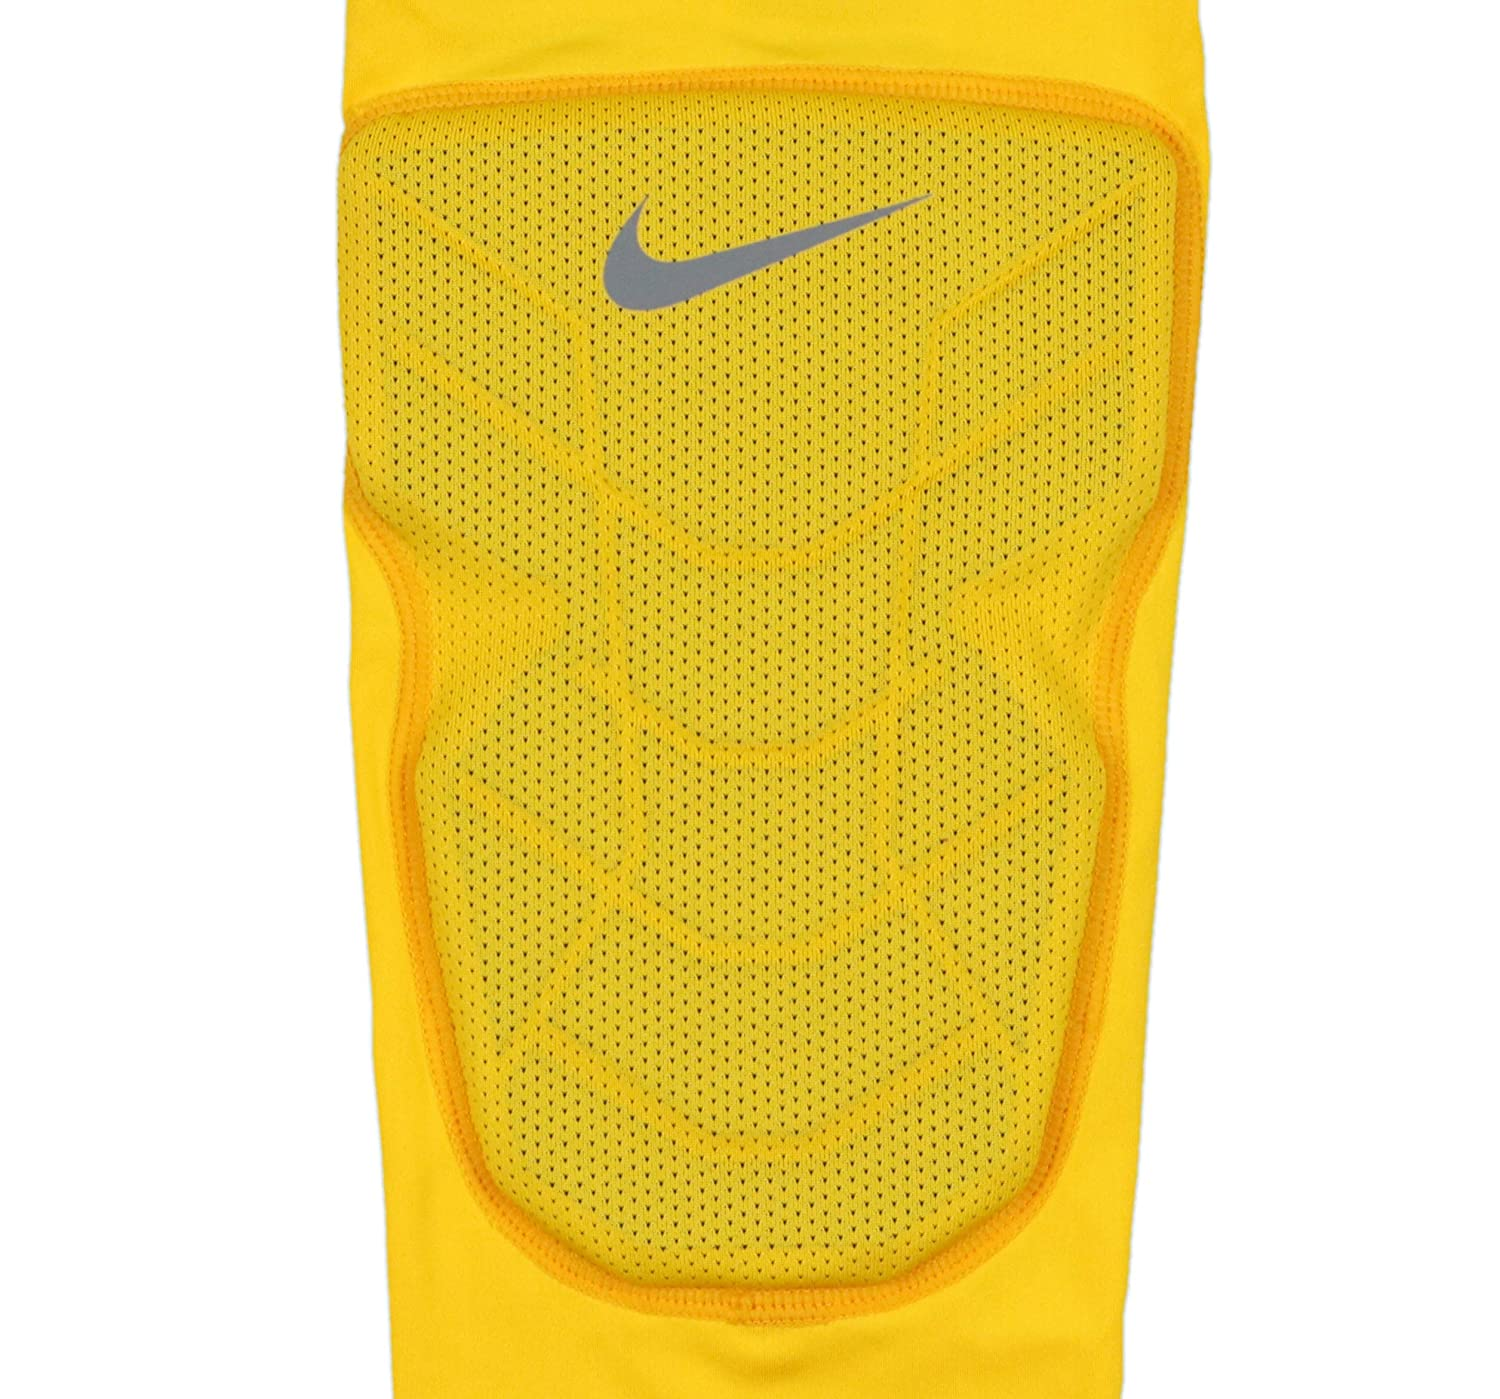 b07a3931 Amazon.com : Nike Men's Pro Combat Hyperstrong Padded Basketball Knee  Sleeve Large Yellow Gray : Sports & Outdoors